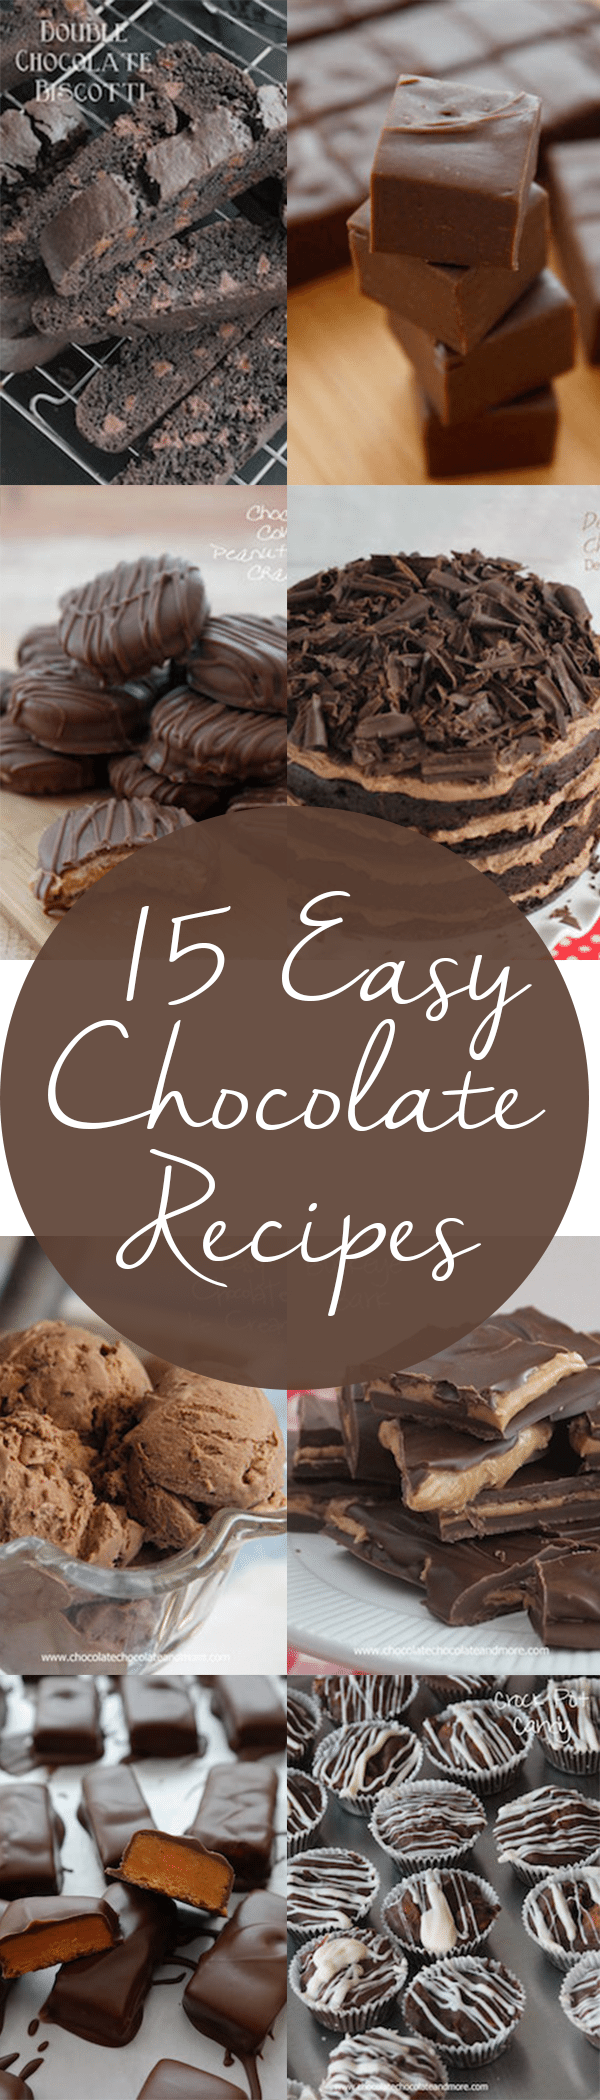 15-easy-chocolate-recipes-highheelsandgrills